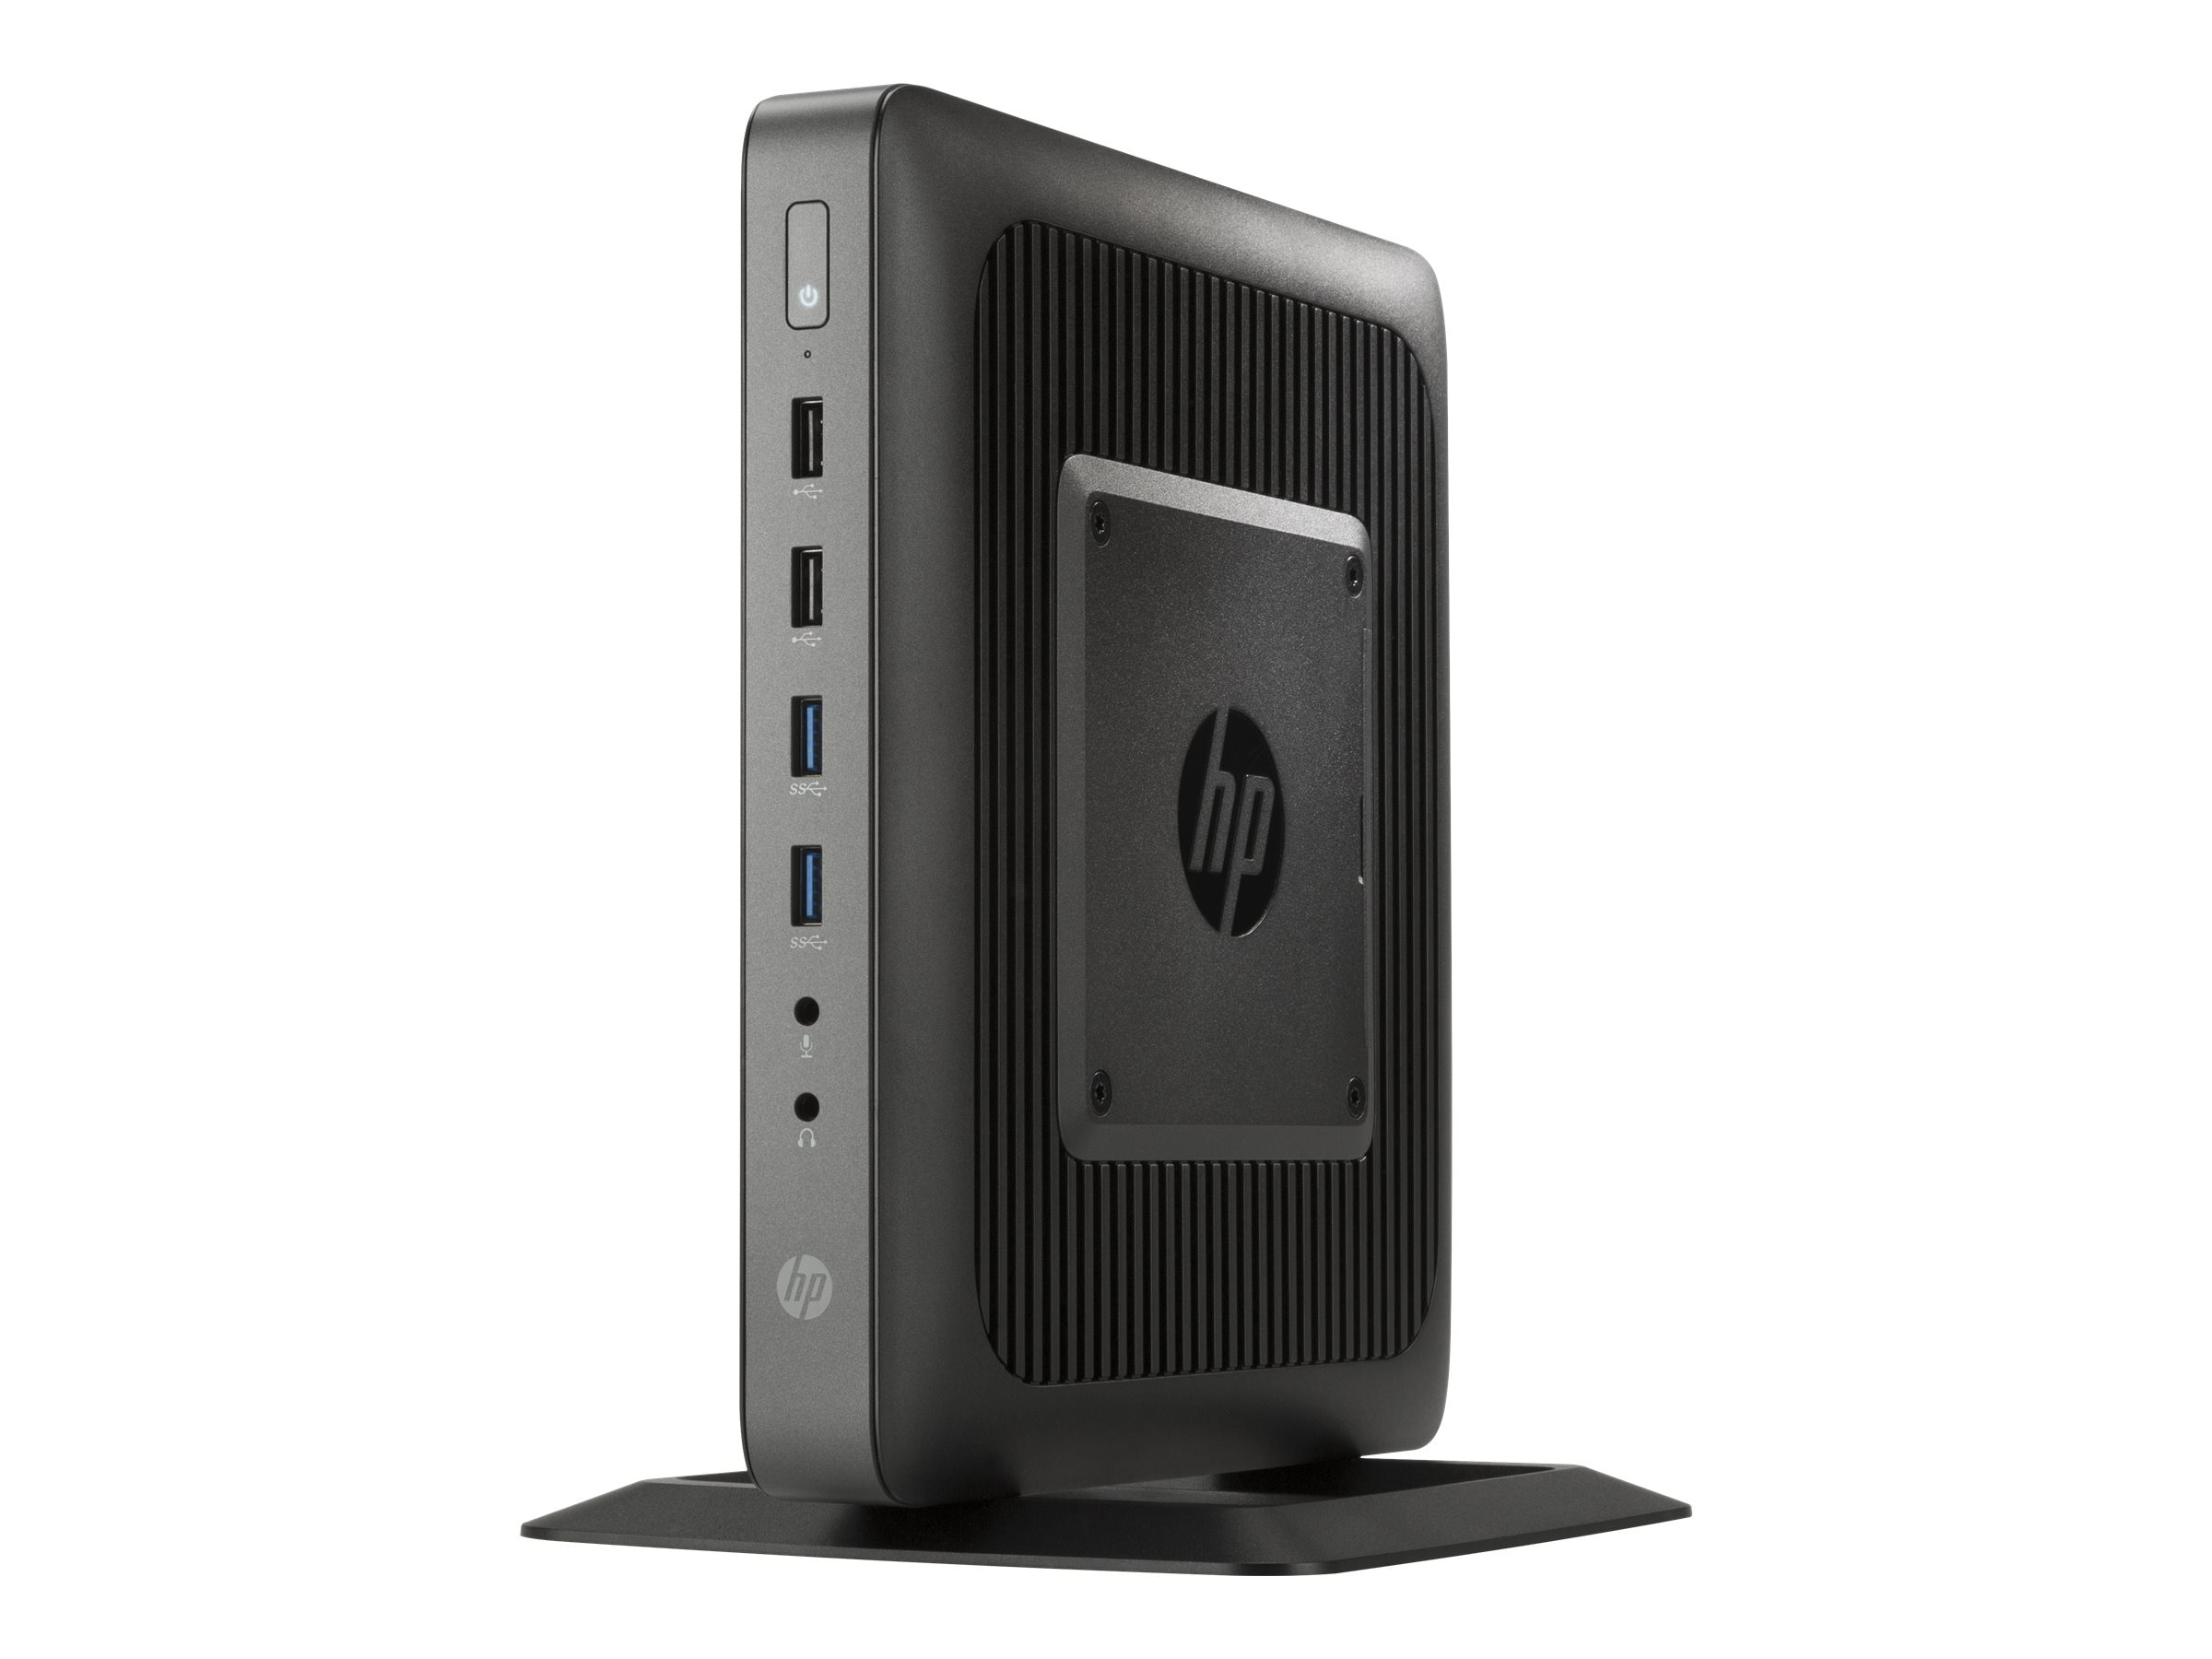 HP t620 Flexible Thin Client AMD QC GX-415GA 1.5GHz 4GB RAM 64GB Flash HD8330E GbE WES7E, L9F15UT#ABA